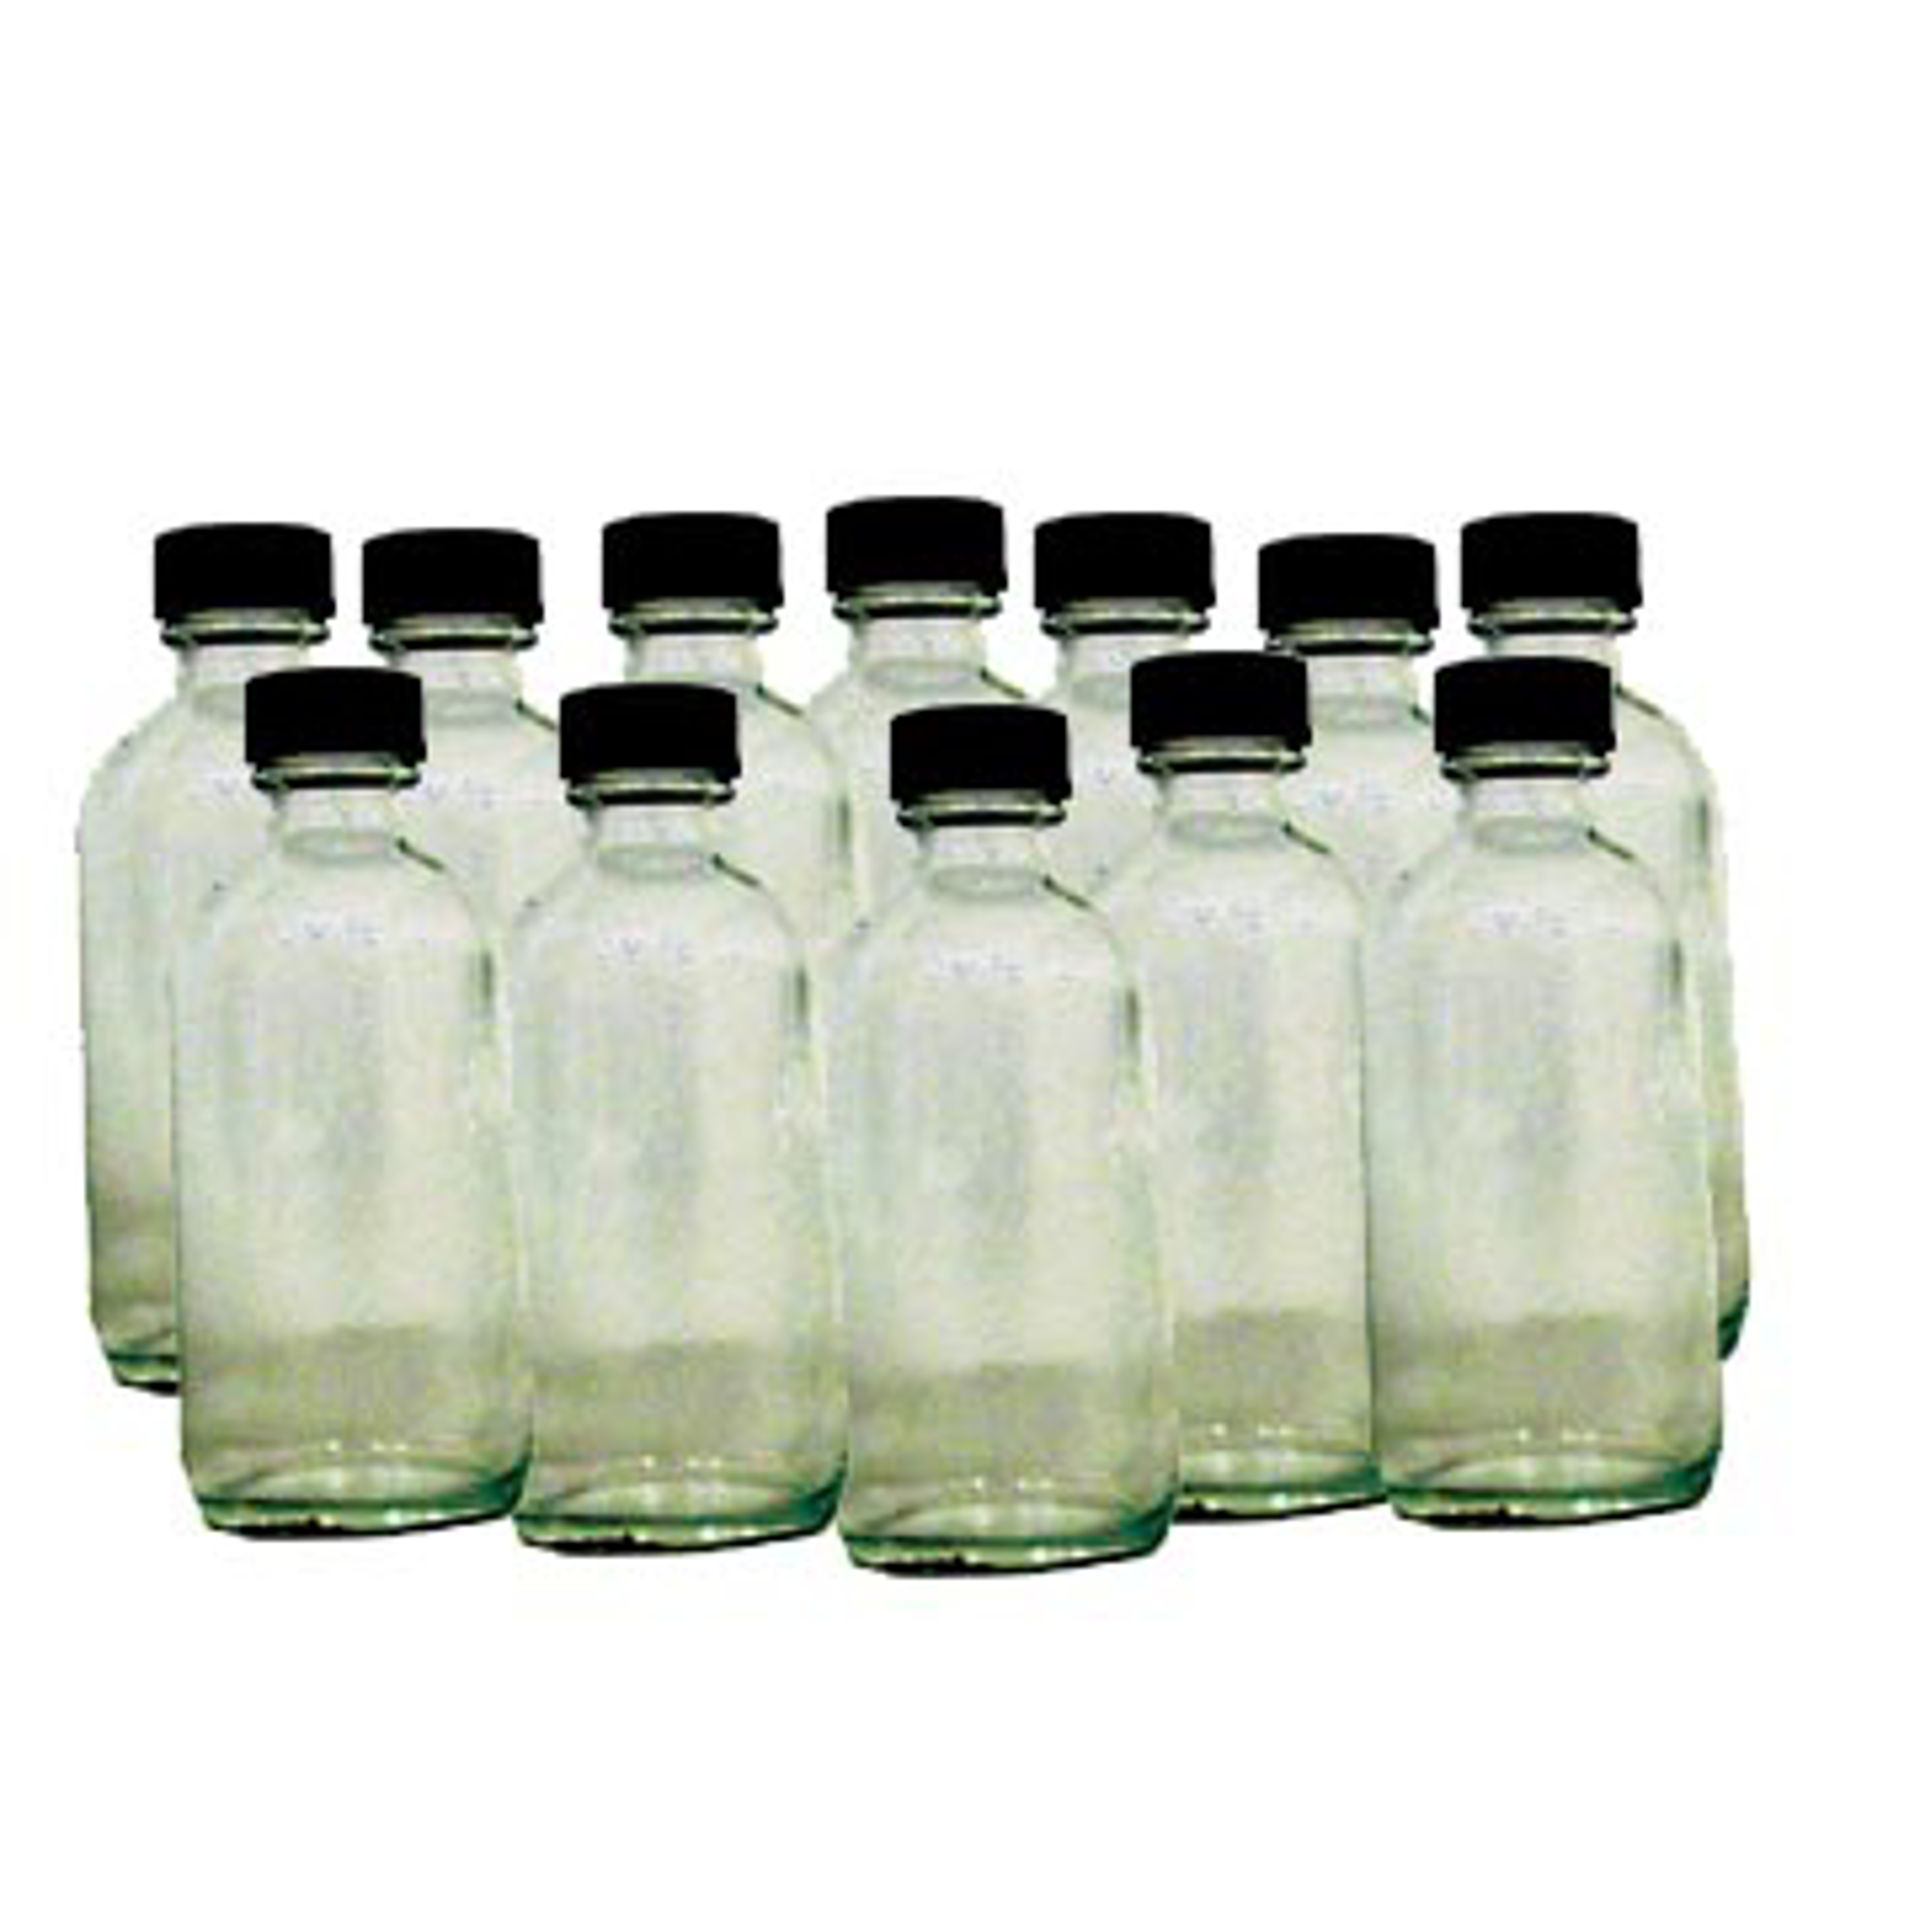 Picture of Case 4 oz. Boston Round Bottles - 128